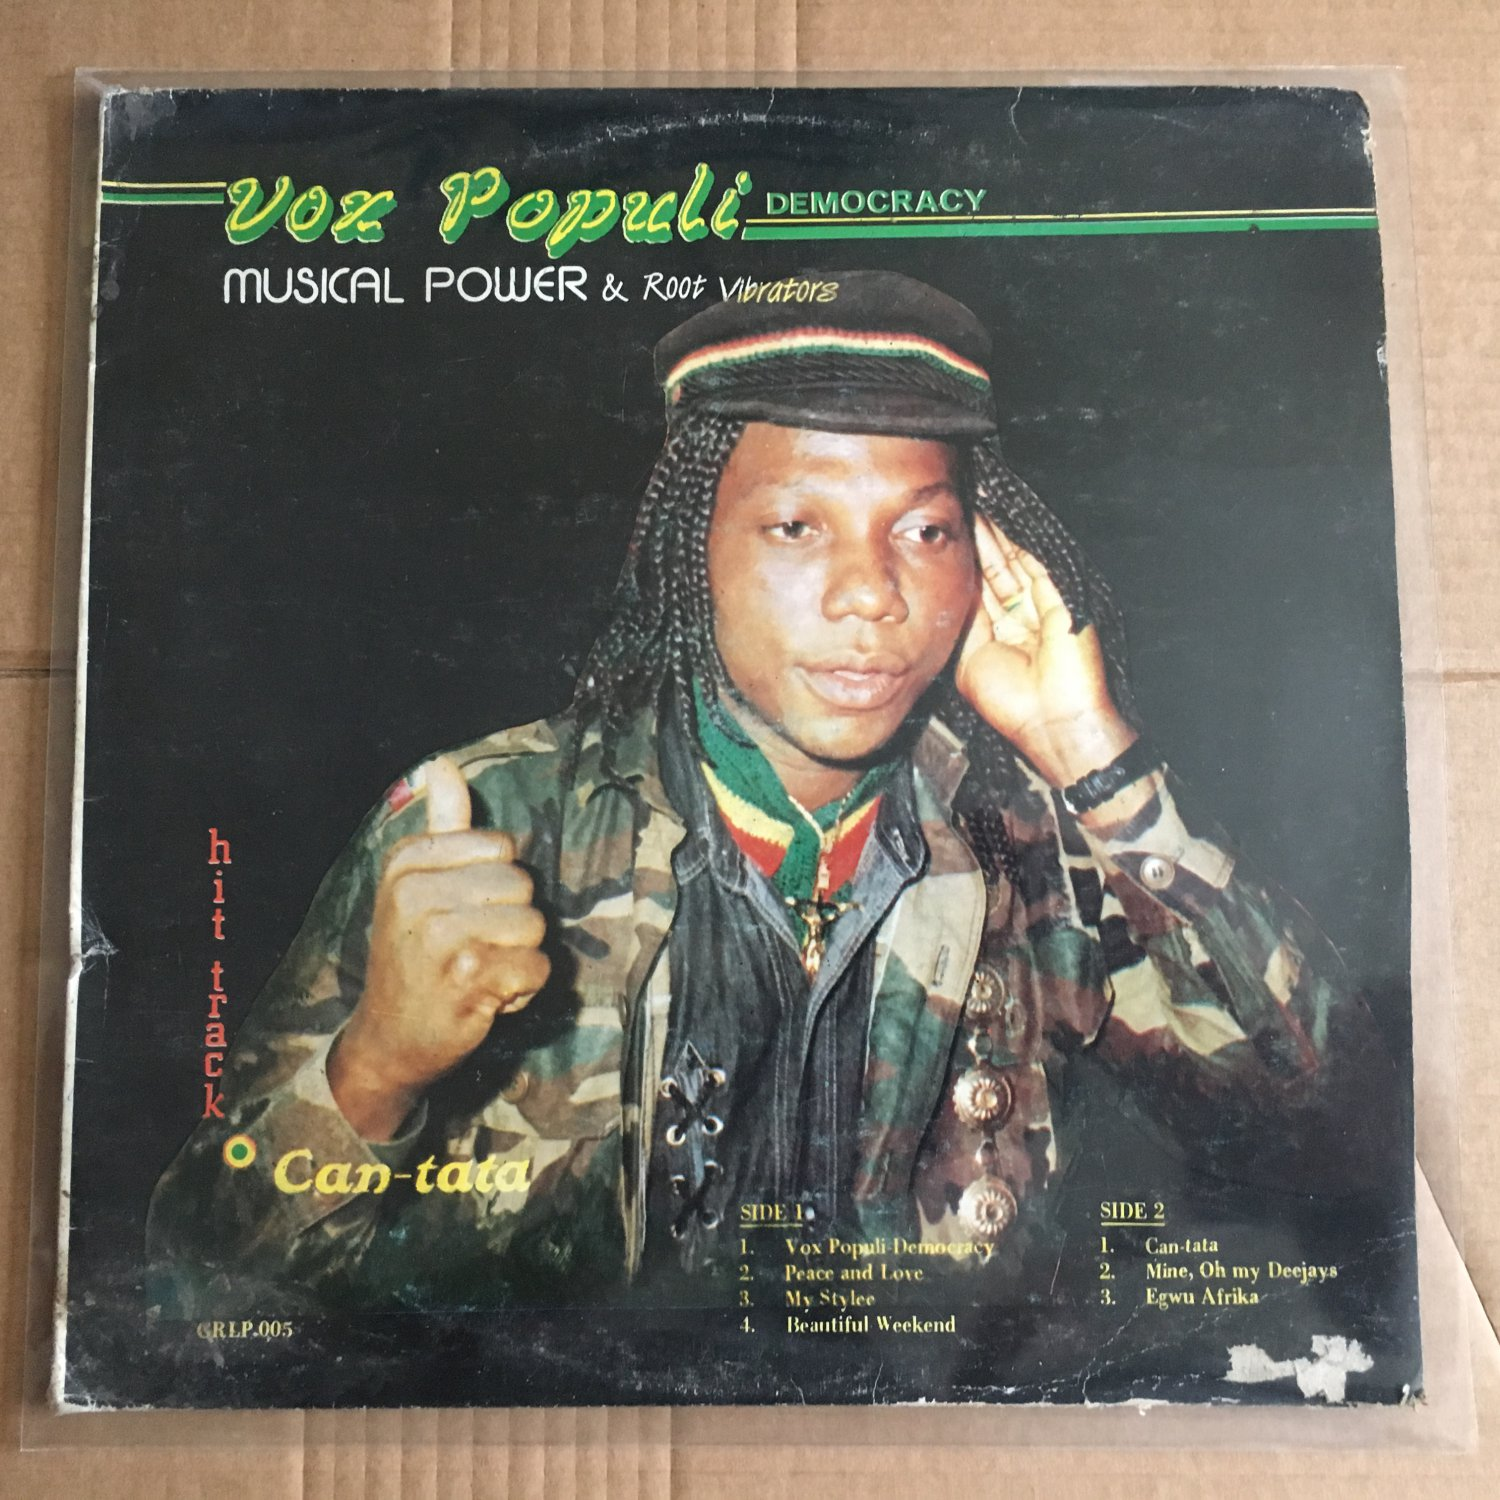 MUSICAL ROOTS & ROOT VIBRATORS LP vox populi democracy NIGERIA REGGAE mp3 LISTEN